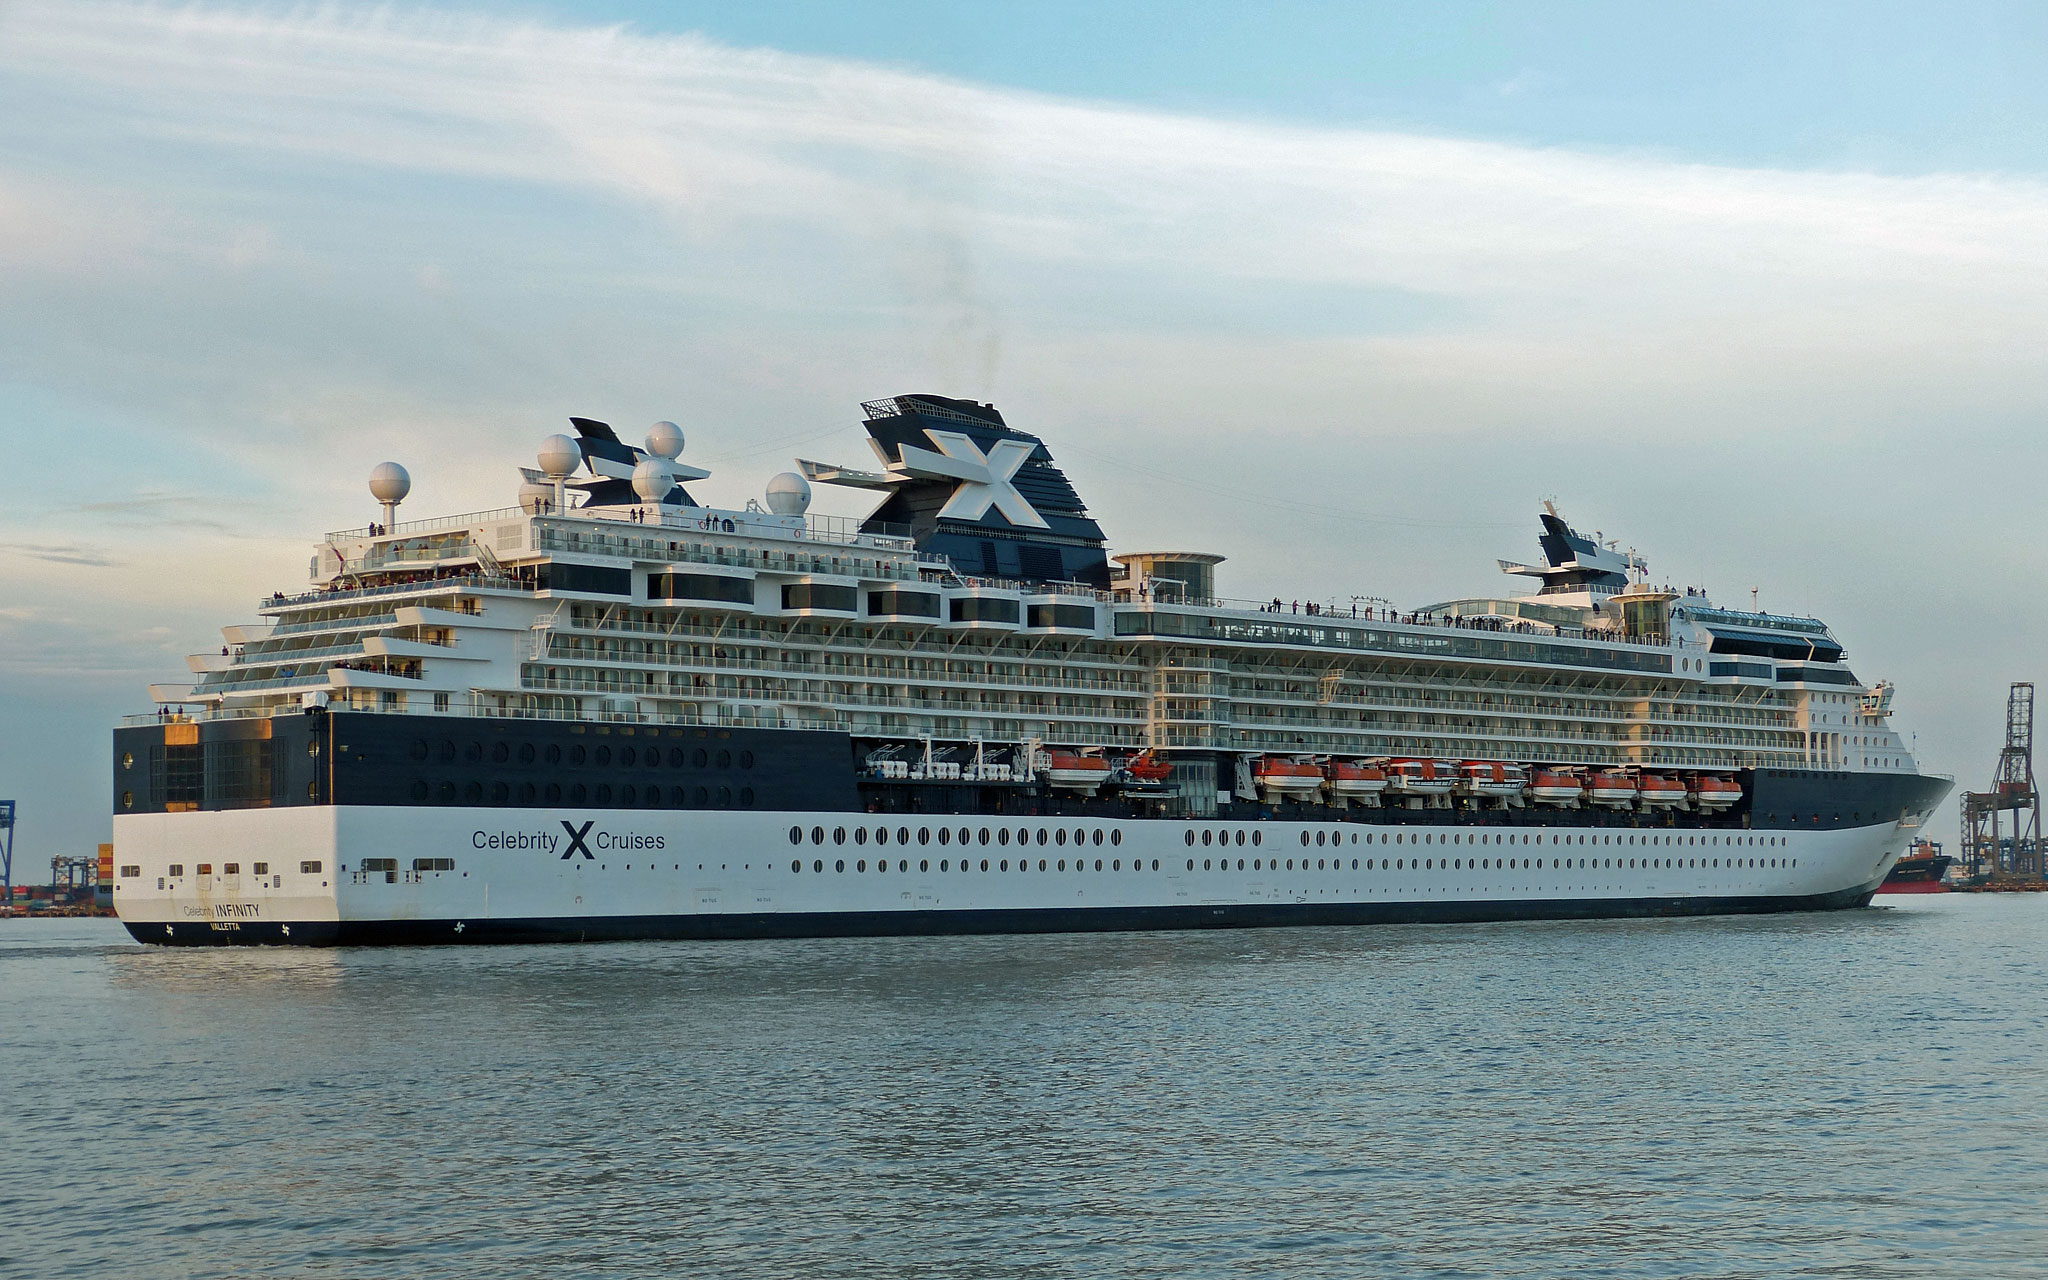 Celebrity Equinox Cruise Ship from Celebrity Cruise Line